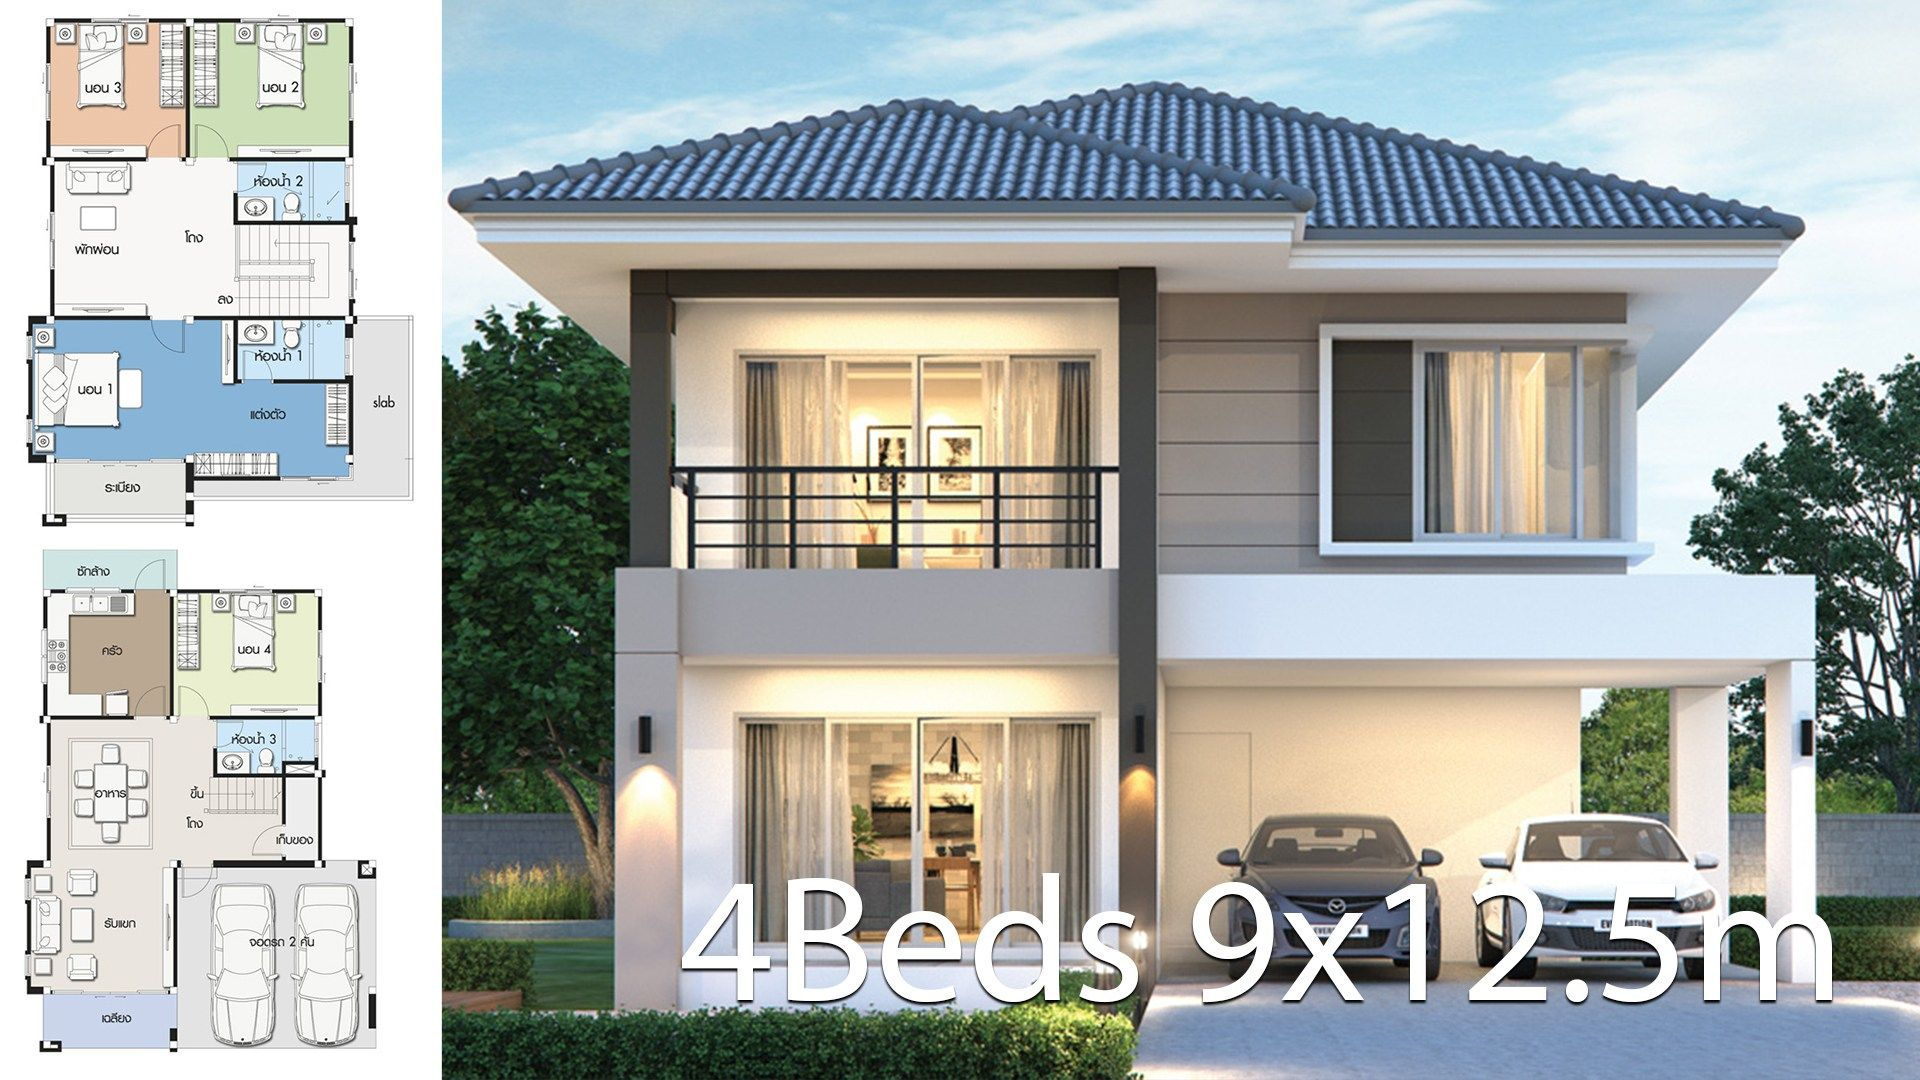 House Design Plan 9x12 5m With 4 Bedroom Style Contemporaryhouse Description Number Of F Architect Design House 4 Bedroom House Designs House Designs Exterior